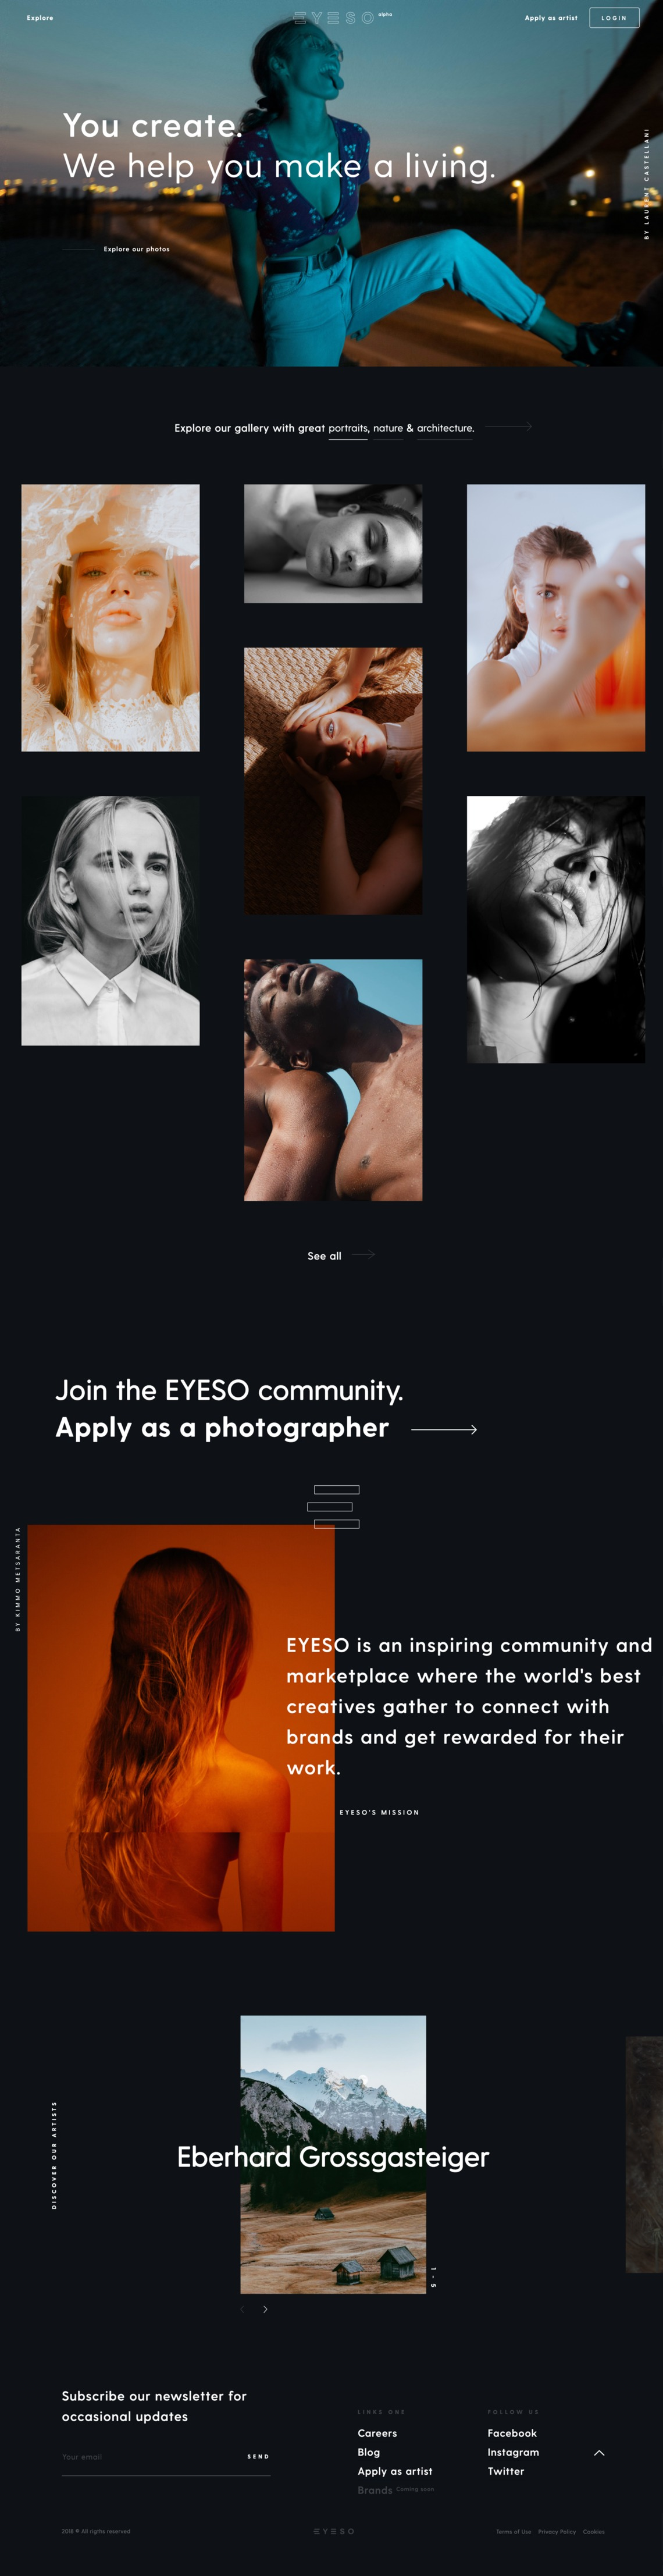 EYESO • Community and Marketplace